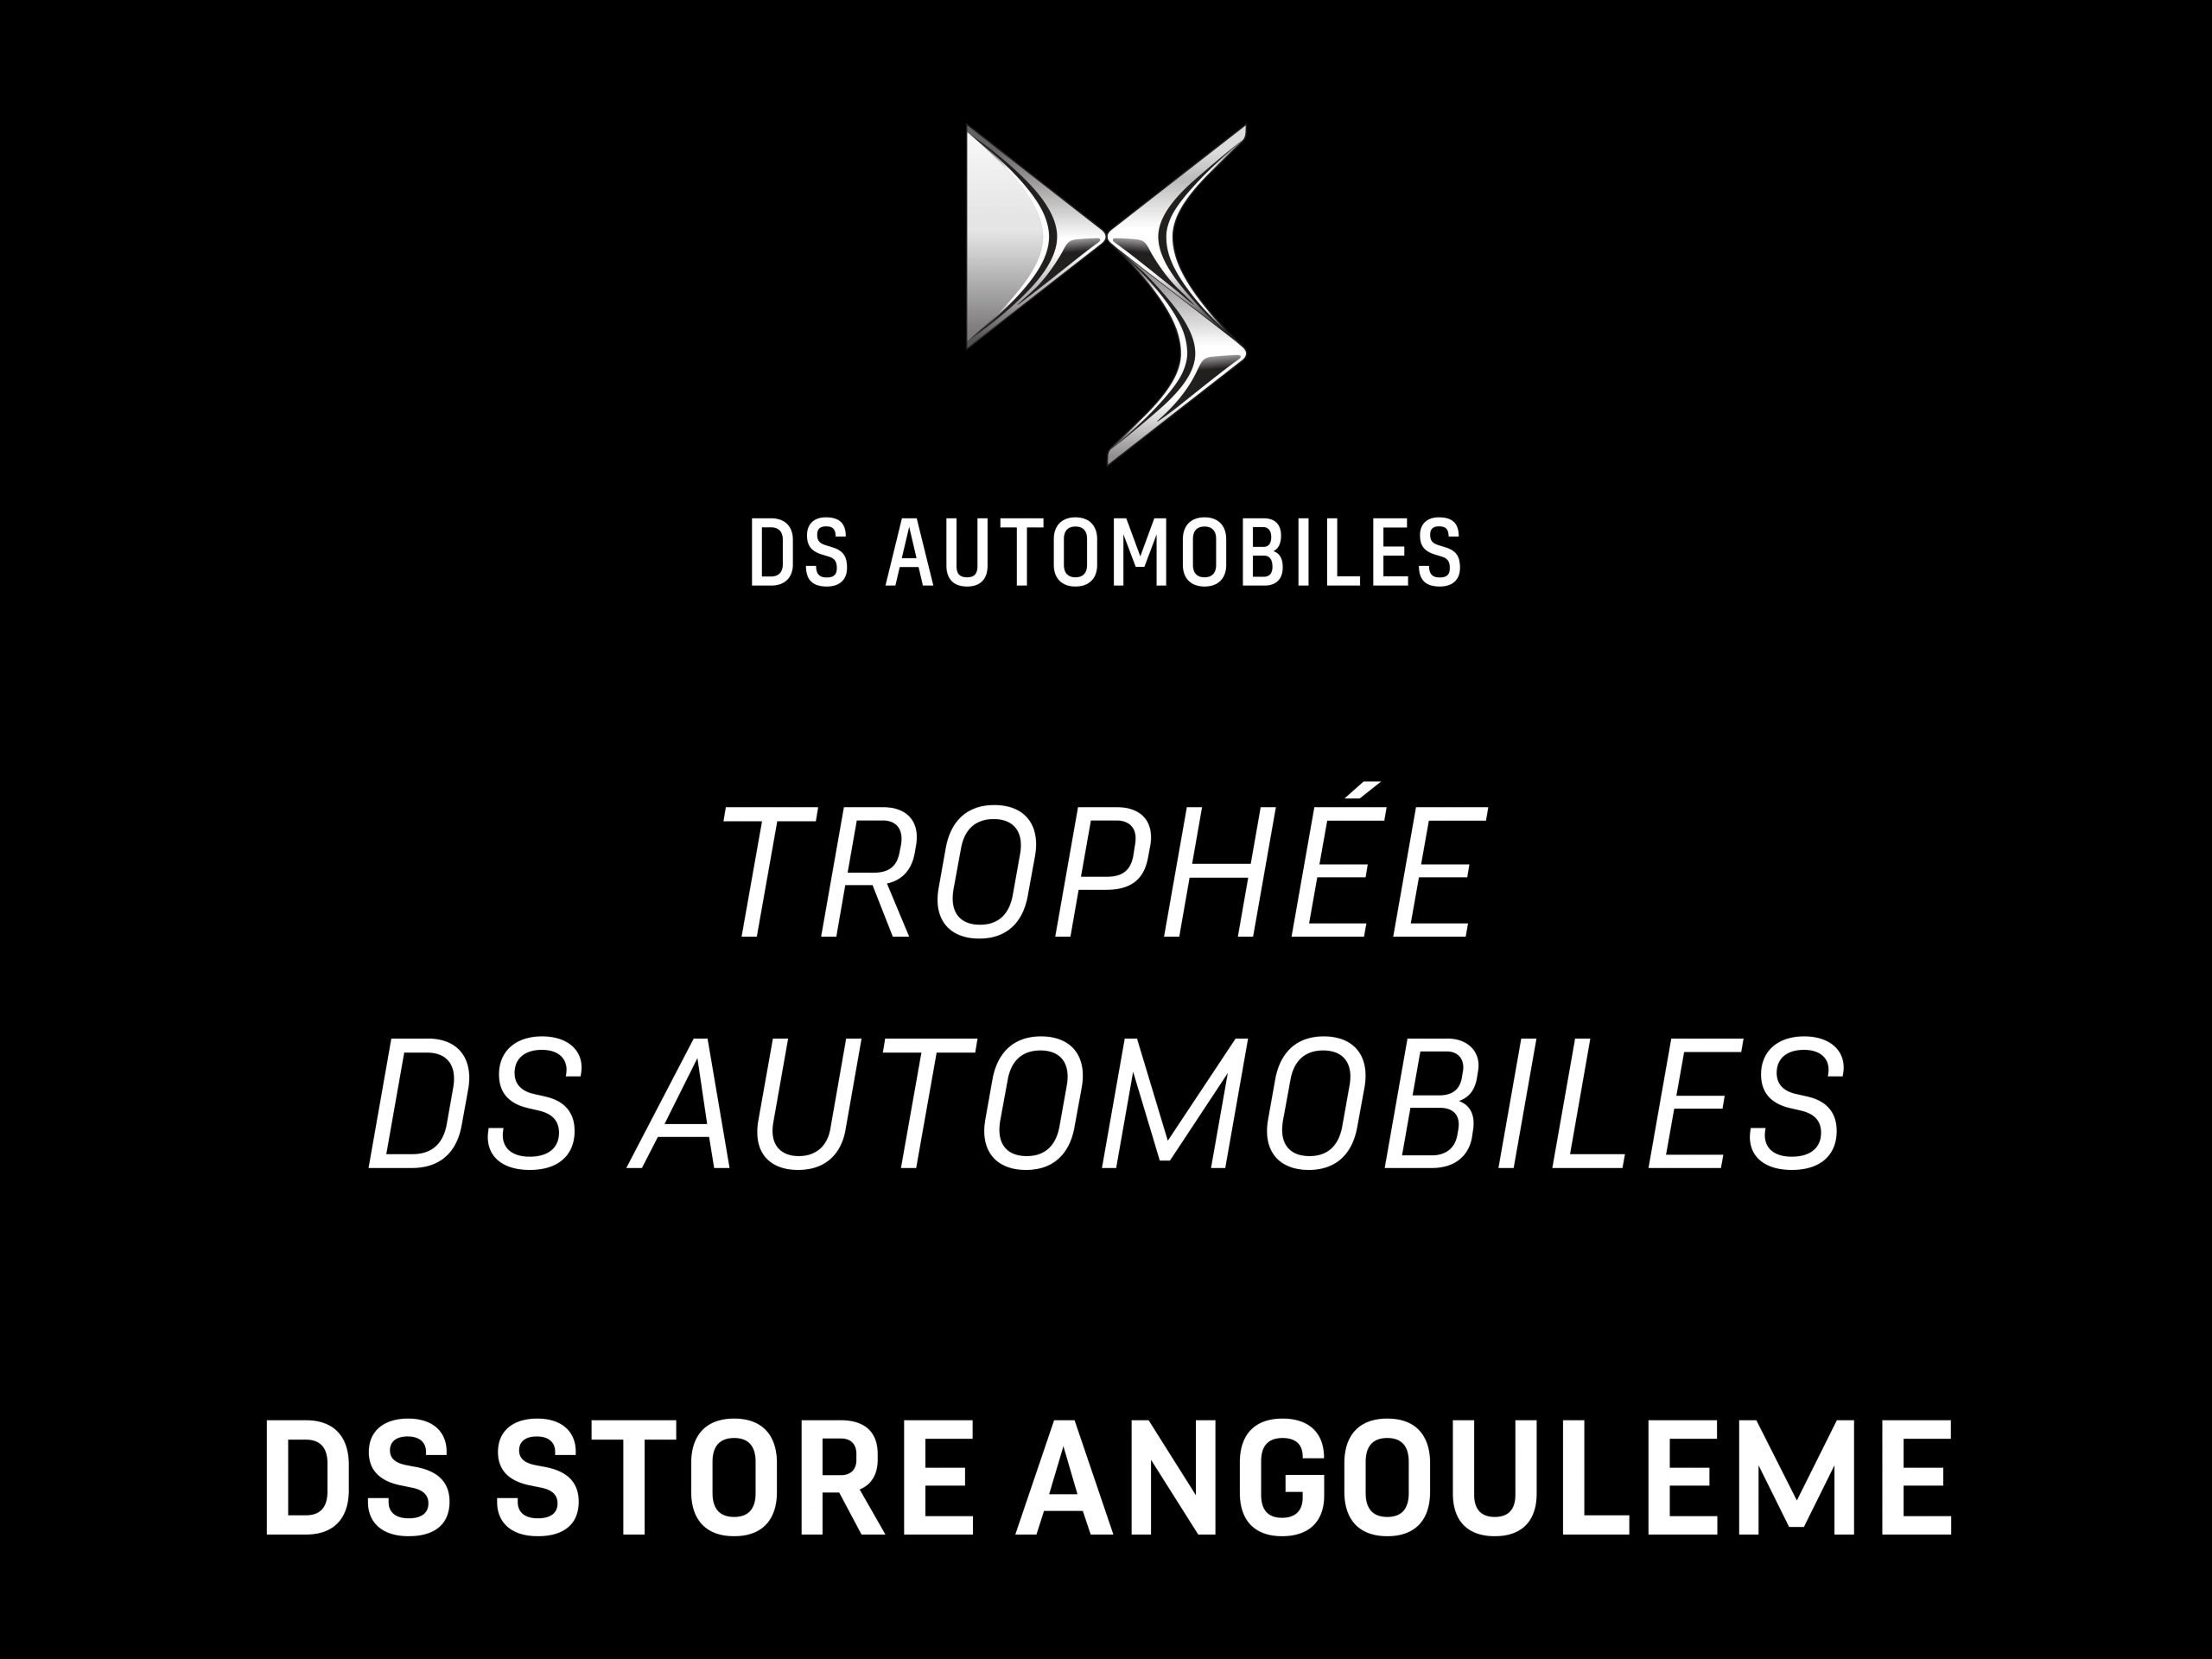 DS STORE ANGOULEME